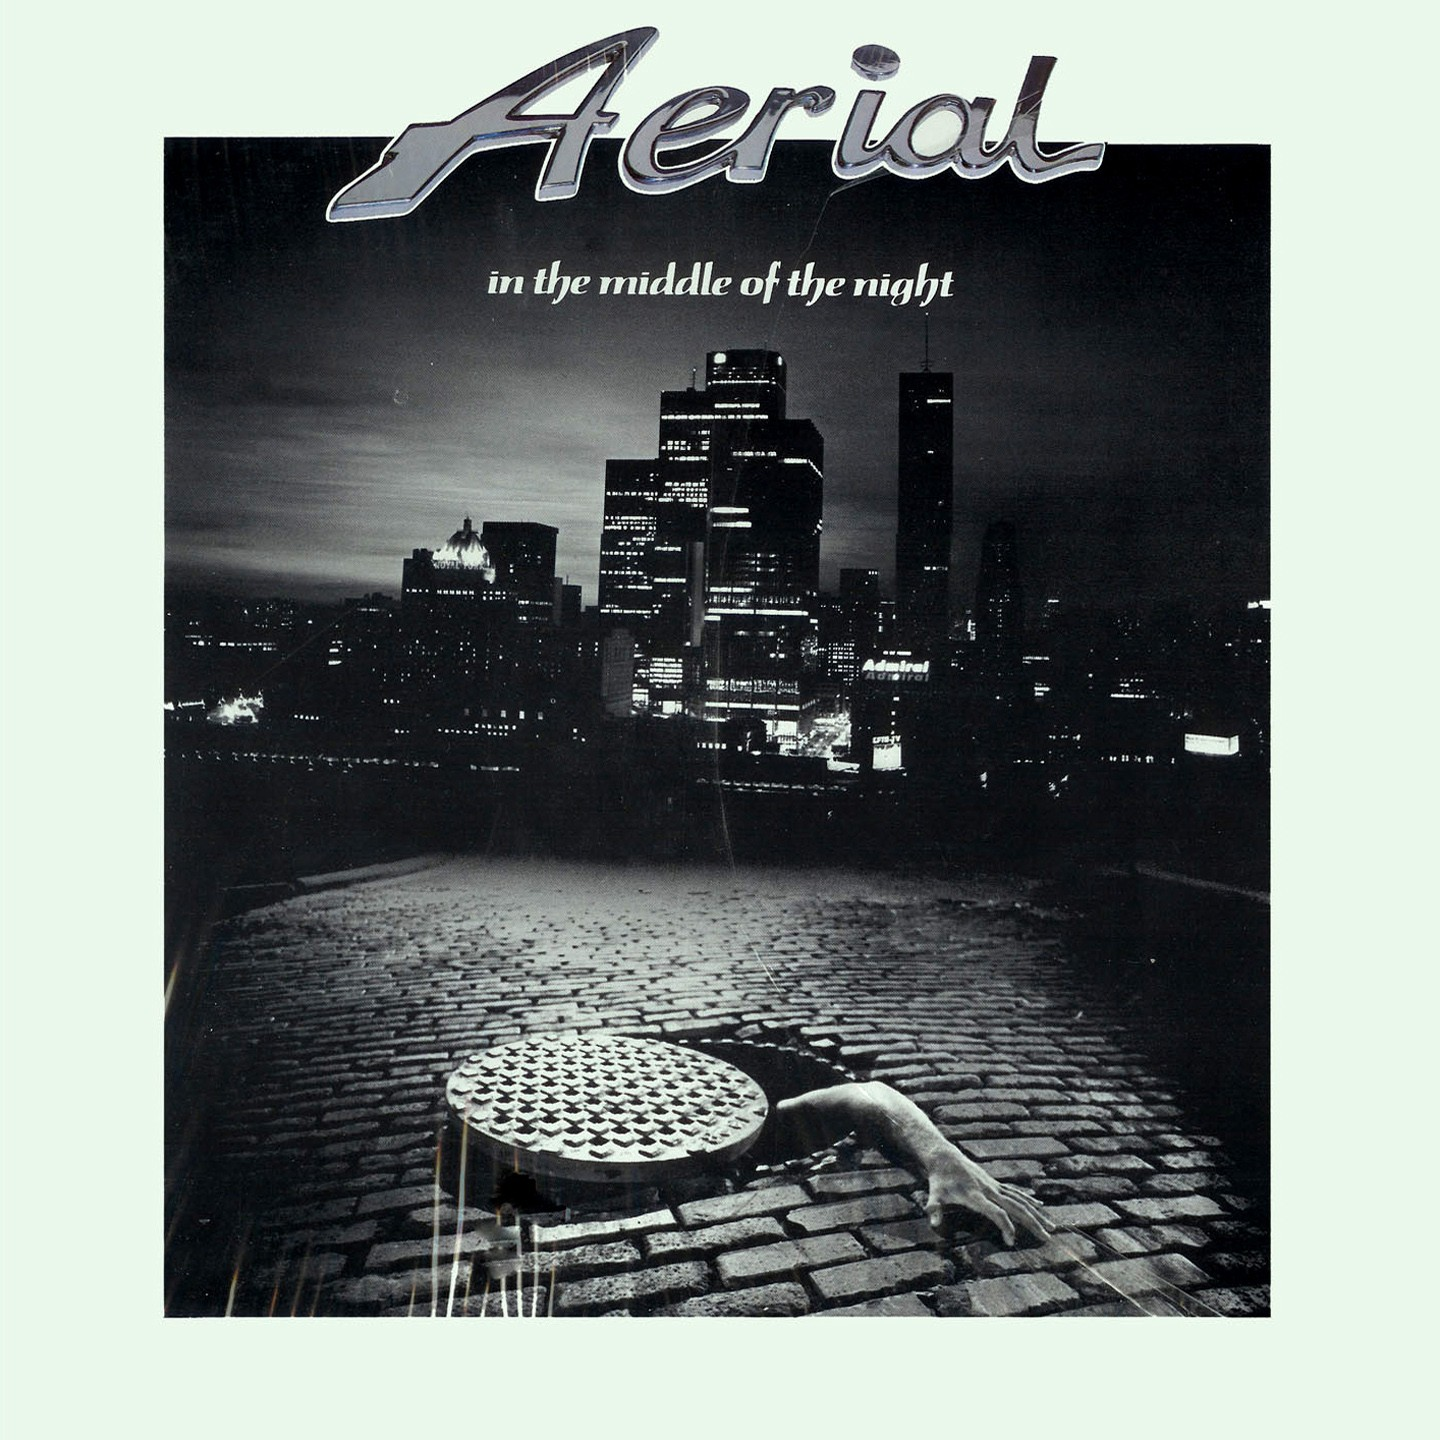 A.O.R. El Rock del madurito - Página 2 Aerial_in_the_middle_of_the_night_1978_retail_cd-front